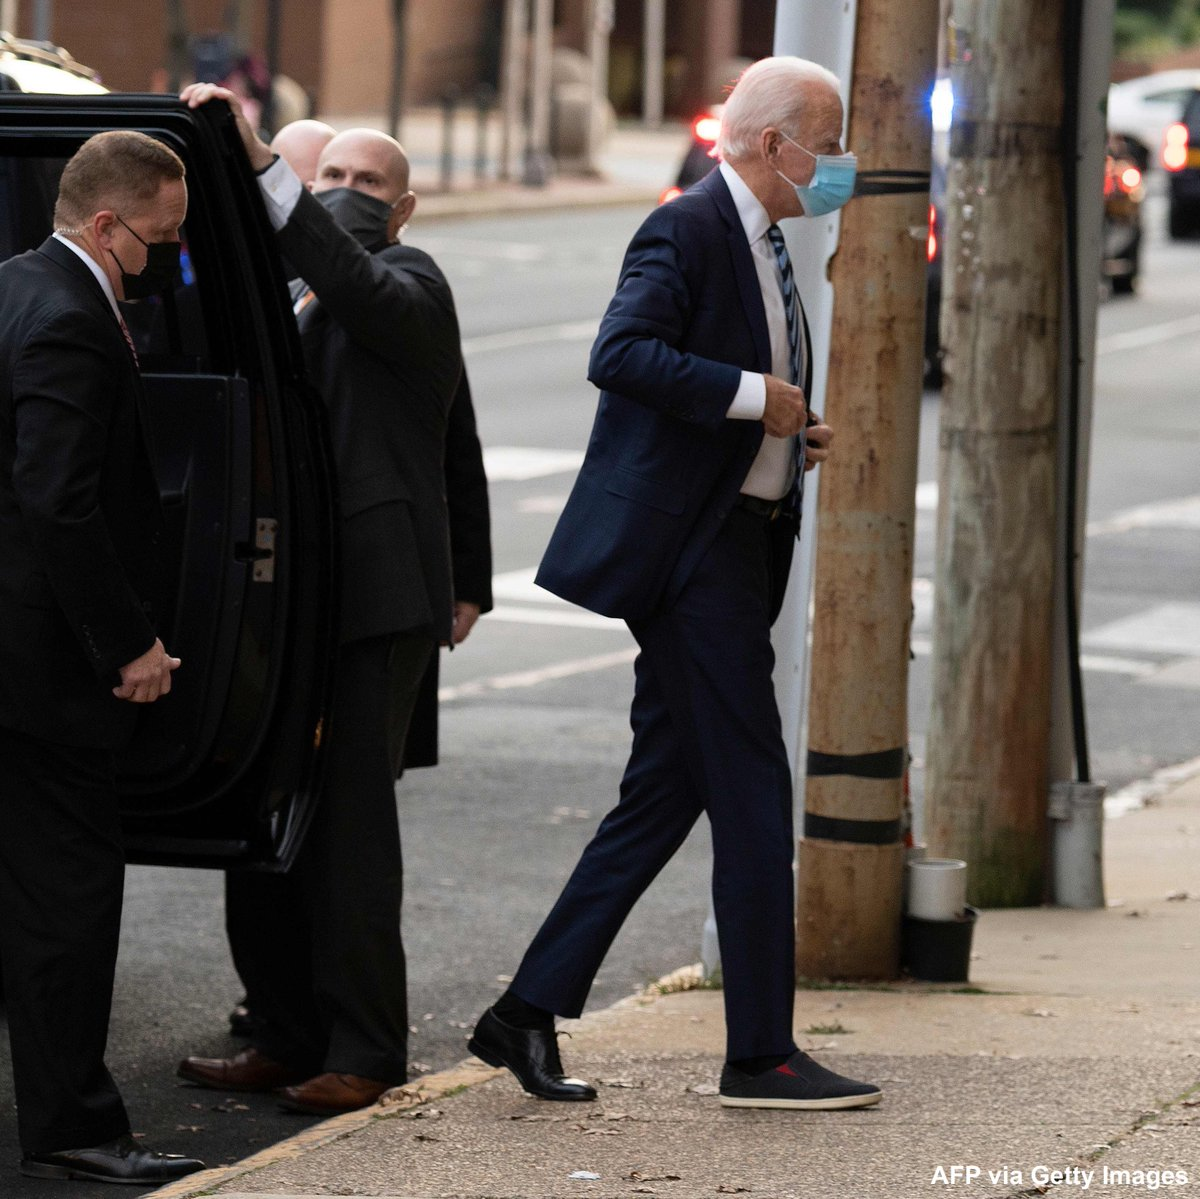 President-elect Joe Biden wears a slip-on shoe over his fractured foot as he arrives at The Queen in Wilmington, Delaware. Biden fractured his right foot in a fall last weekend while playing with his dog.